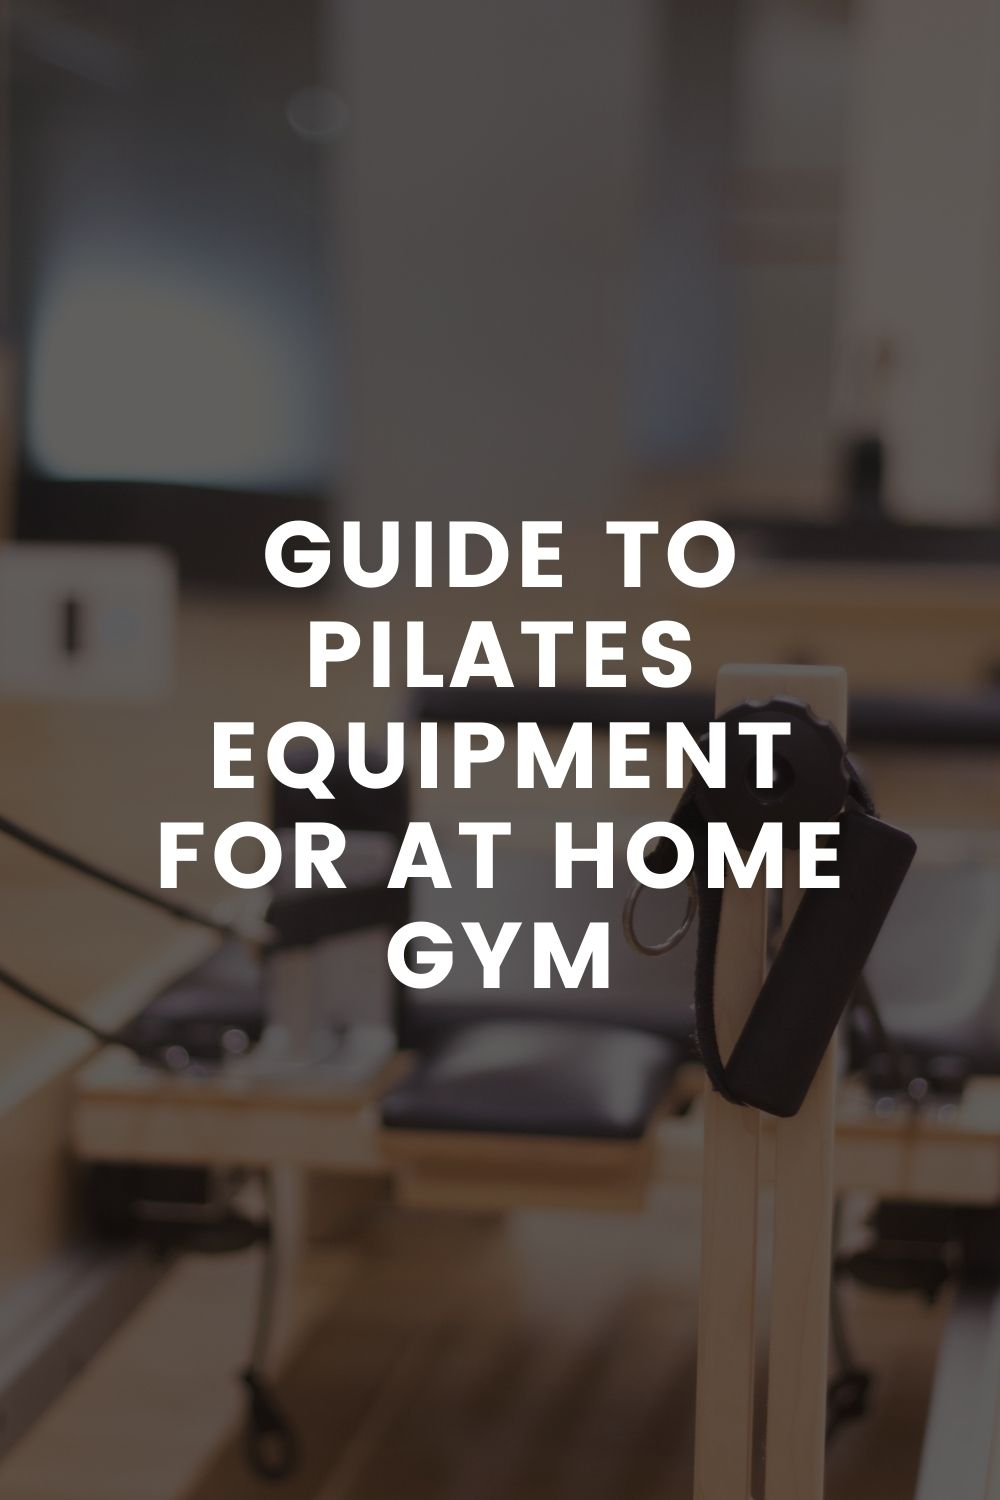 Guide To Pilates Equipment For At Home